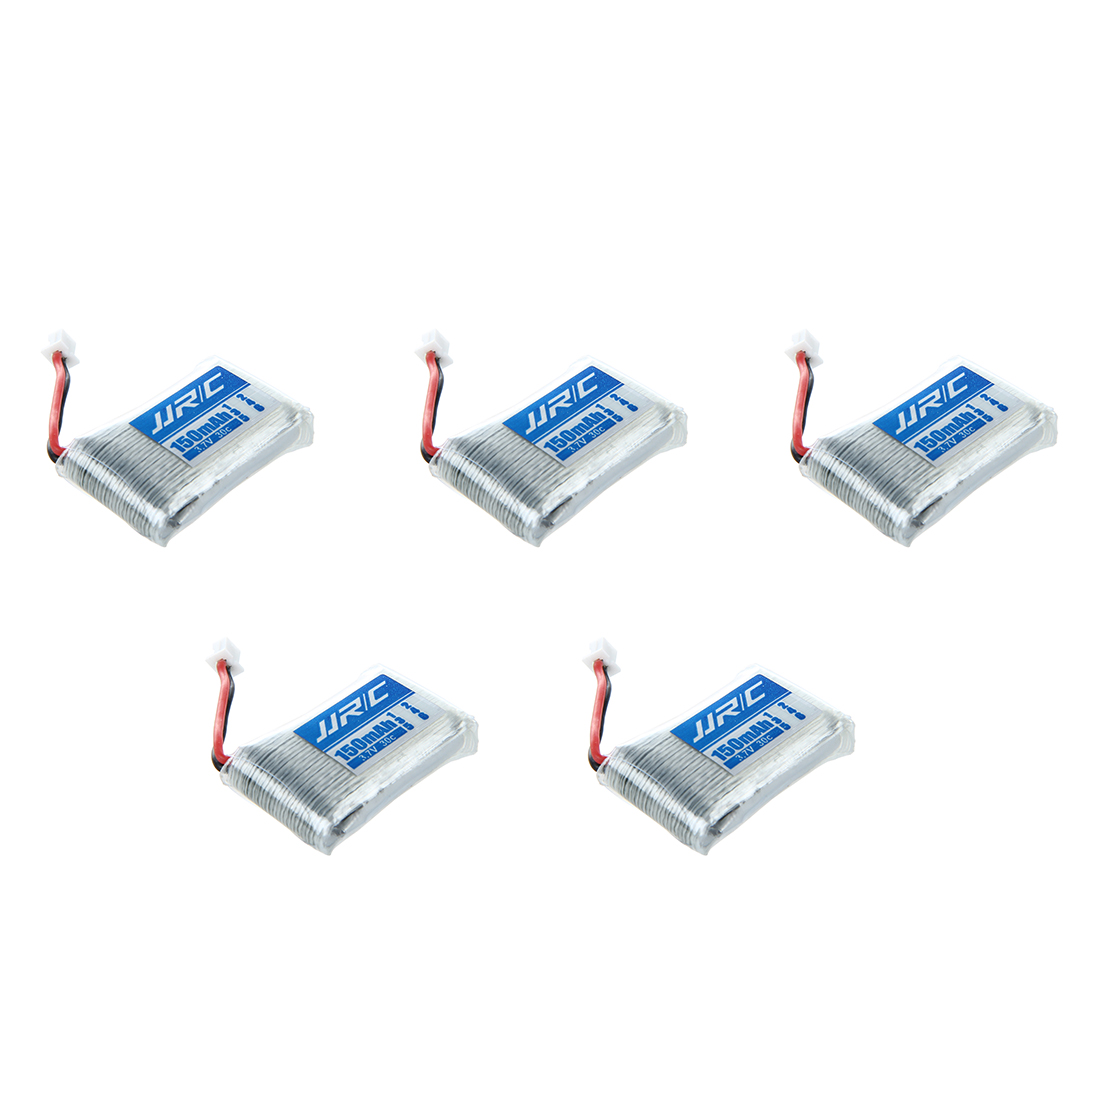 5 x 3 7V 150mAh 30C font b Battery b font 1 x Charger USB Cable